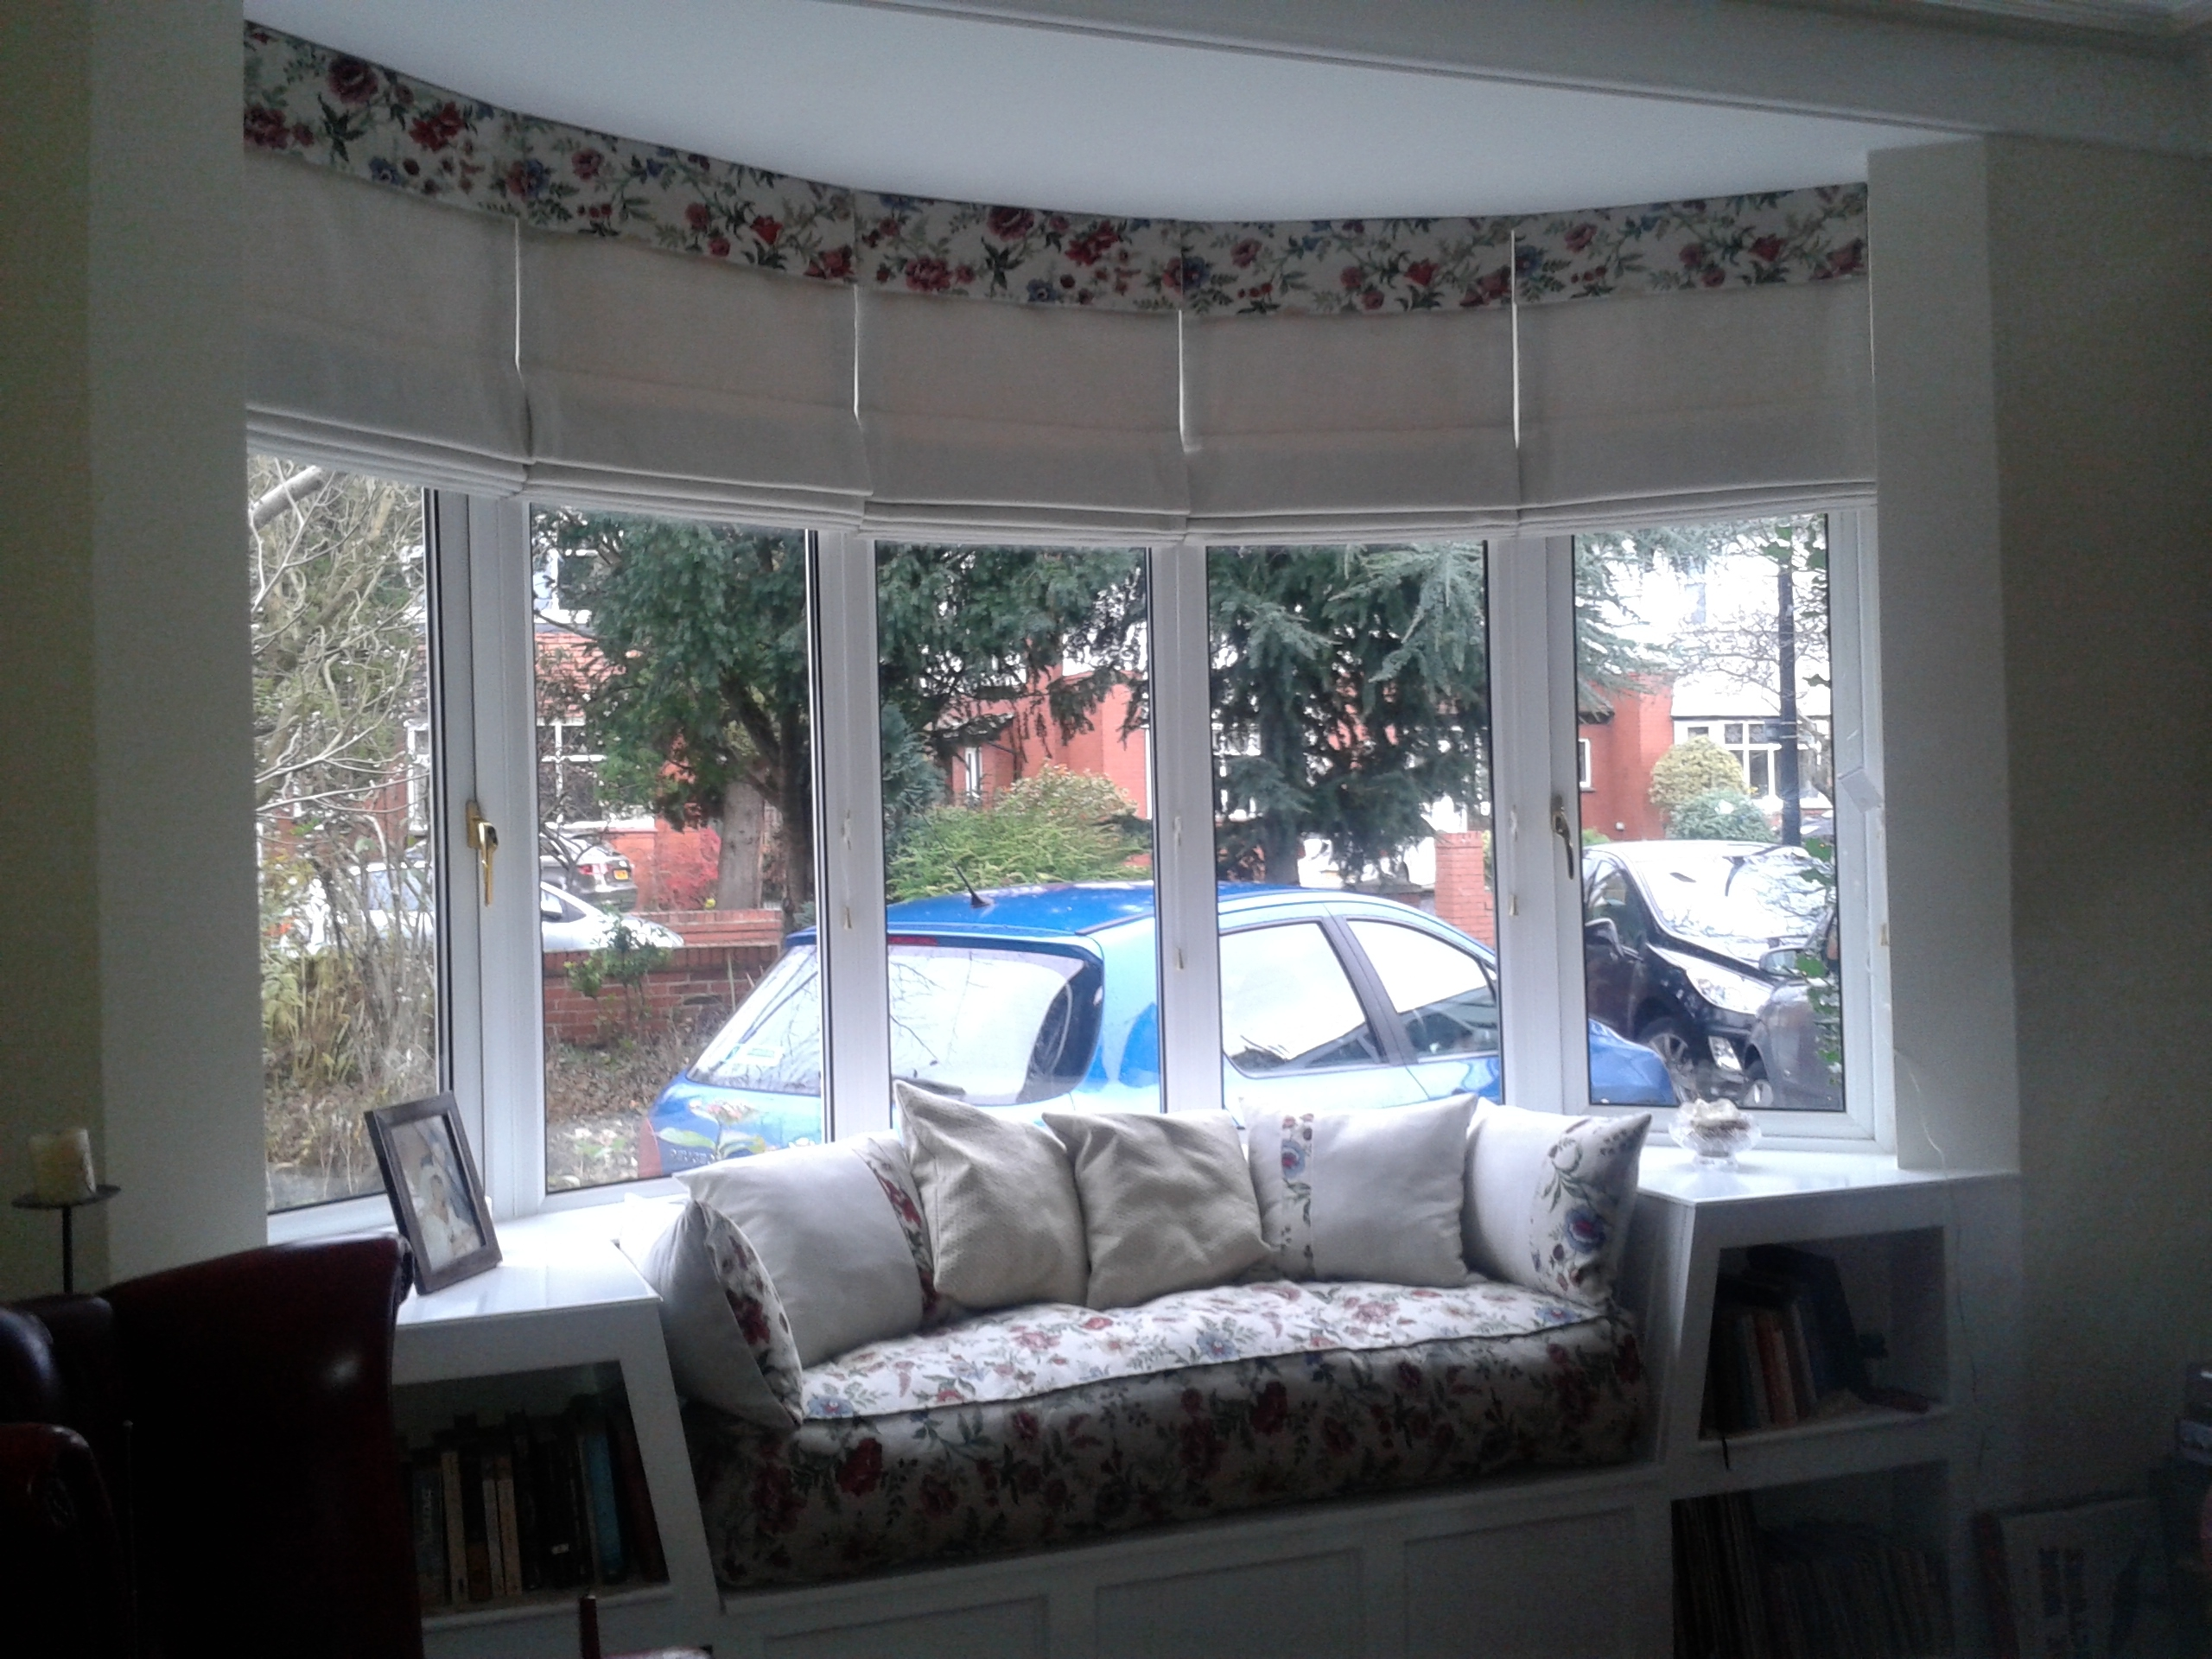 Gallery Regarding Curtains For Round Bay Windows (Image 8 of 15)